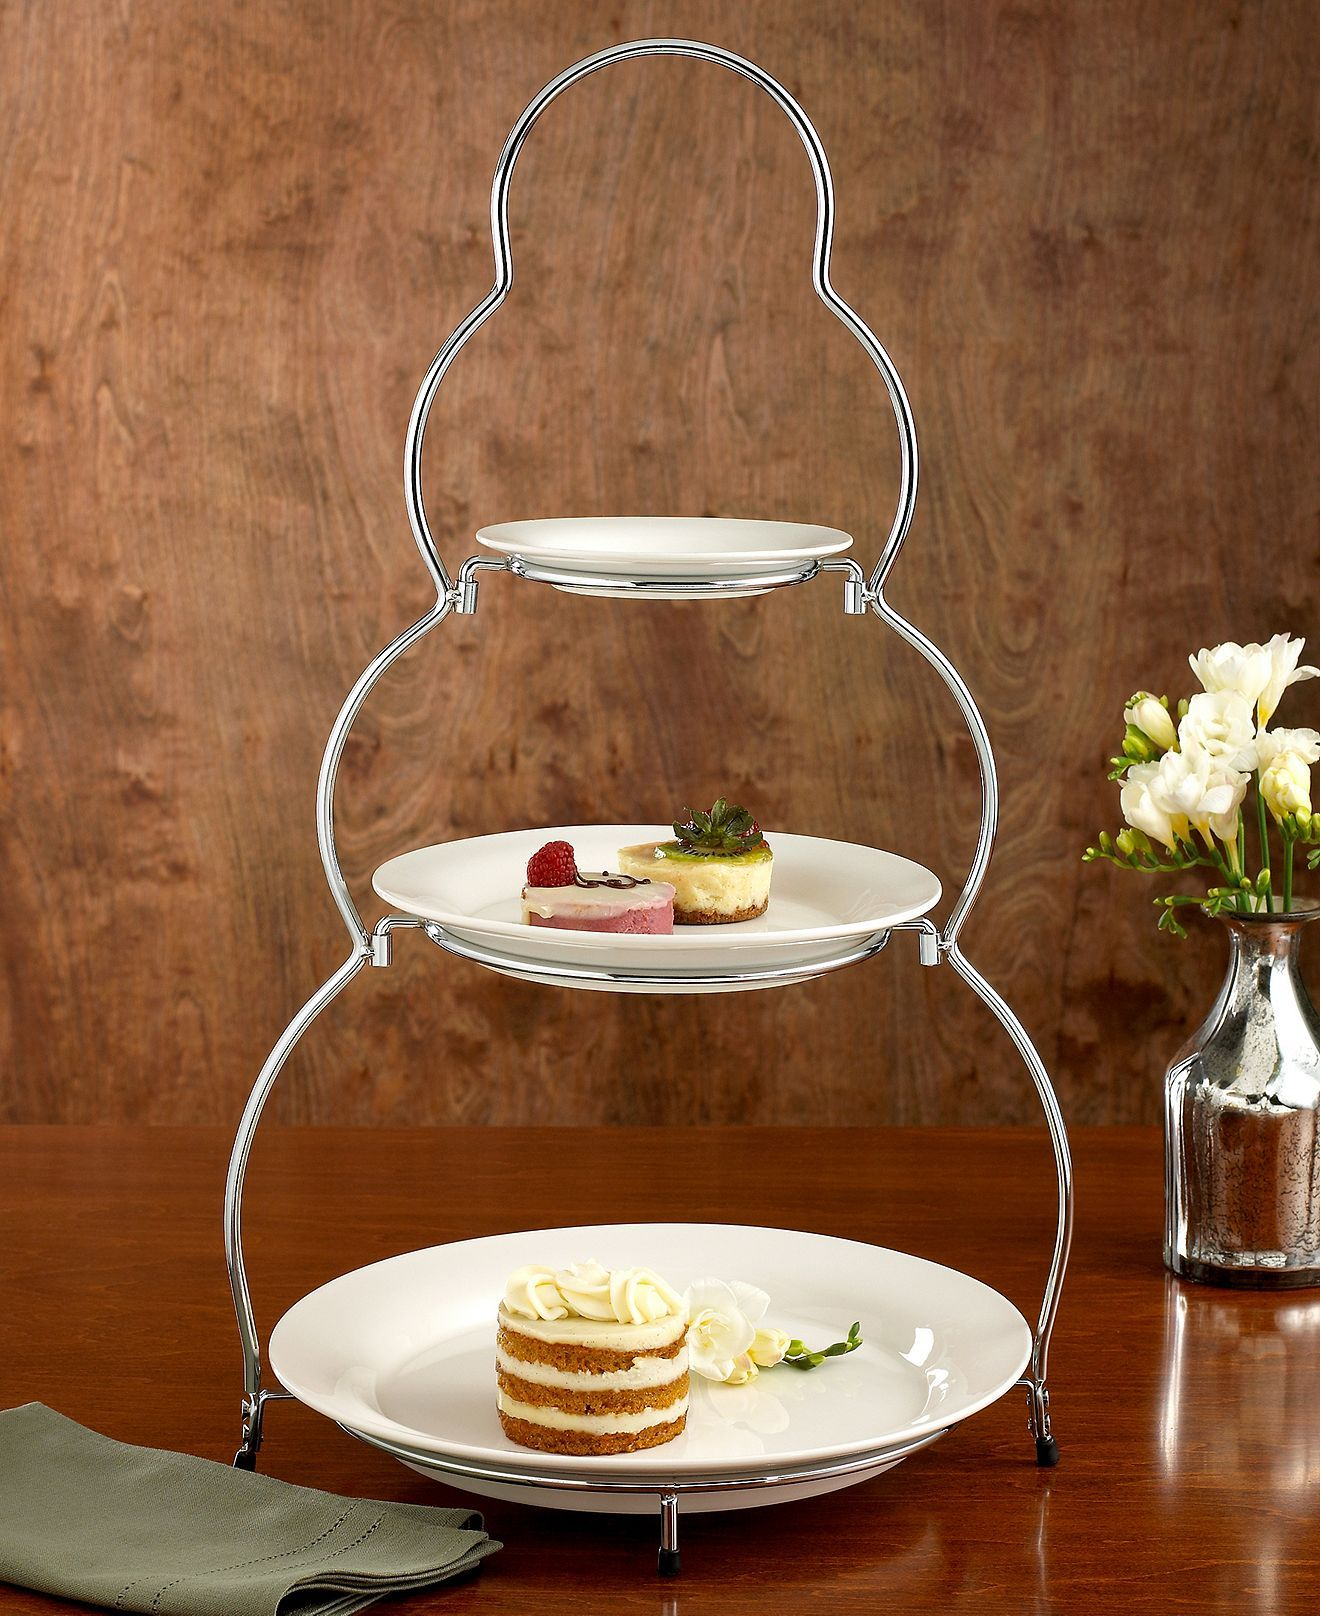 Godinger Siena 3 Tier Server With Plates 21 Tiered Server